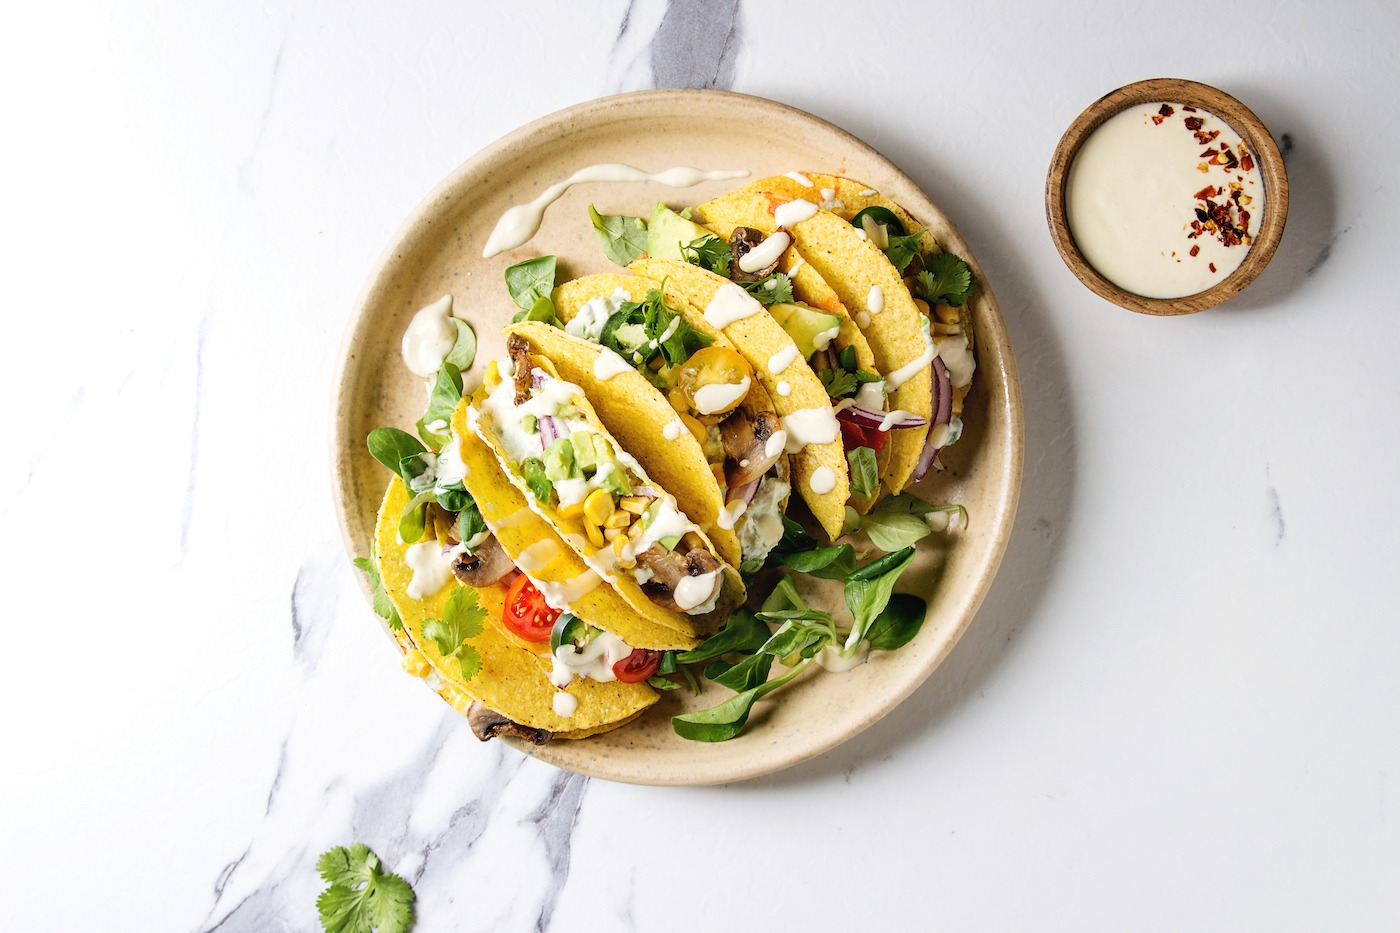 Thumbnail for 6 Healthy Breakfast Taco Recipes to Spice up Your Morning